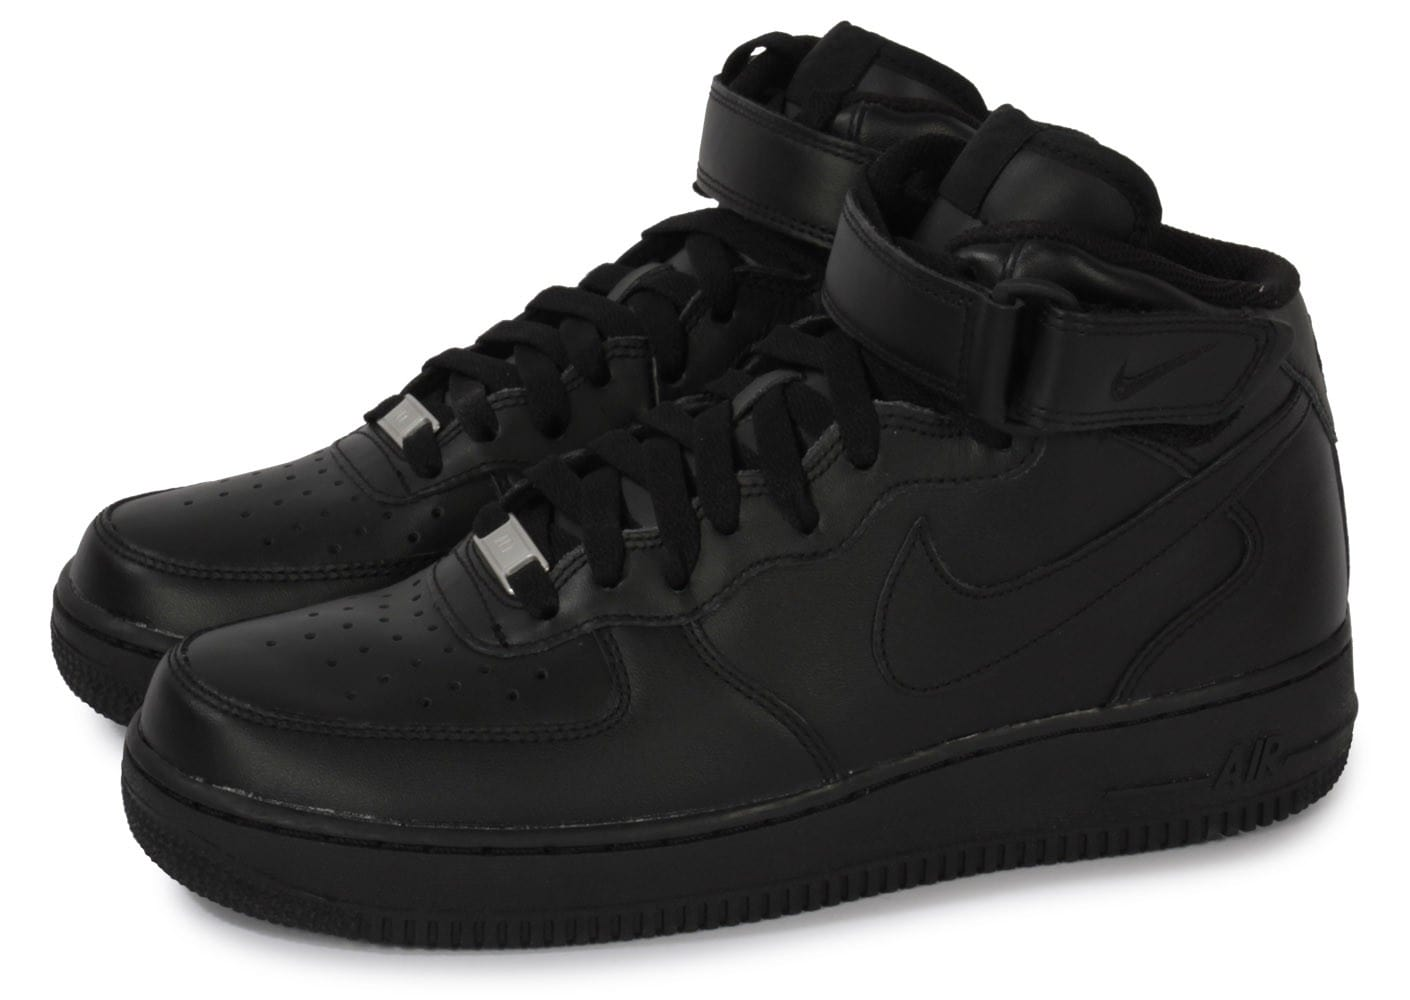 nike air force 1 mid 07 noire chaussures homme chausport. Black Bedroom Furniture Sets. Home Design Ideas